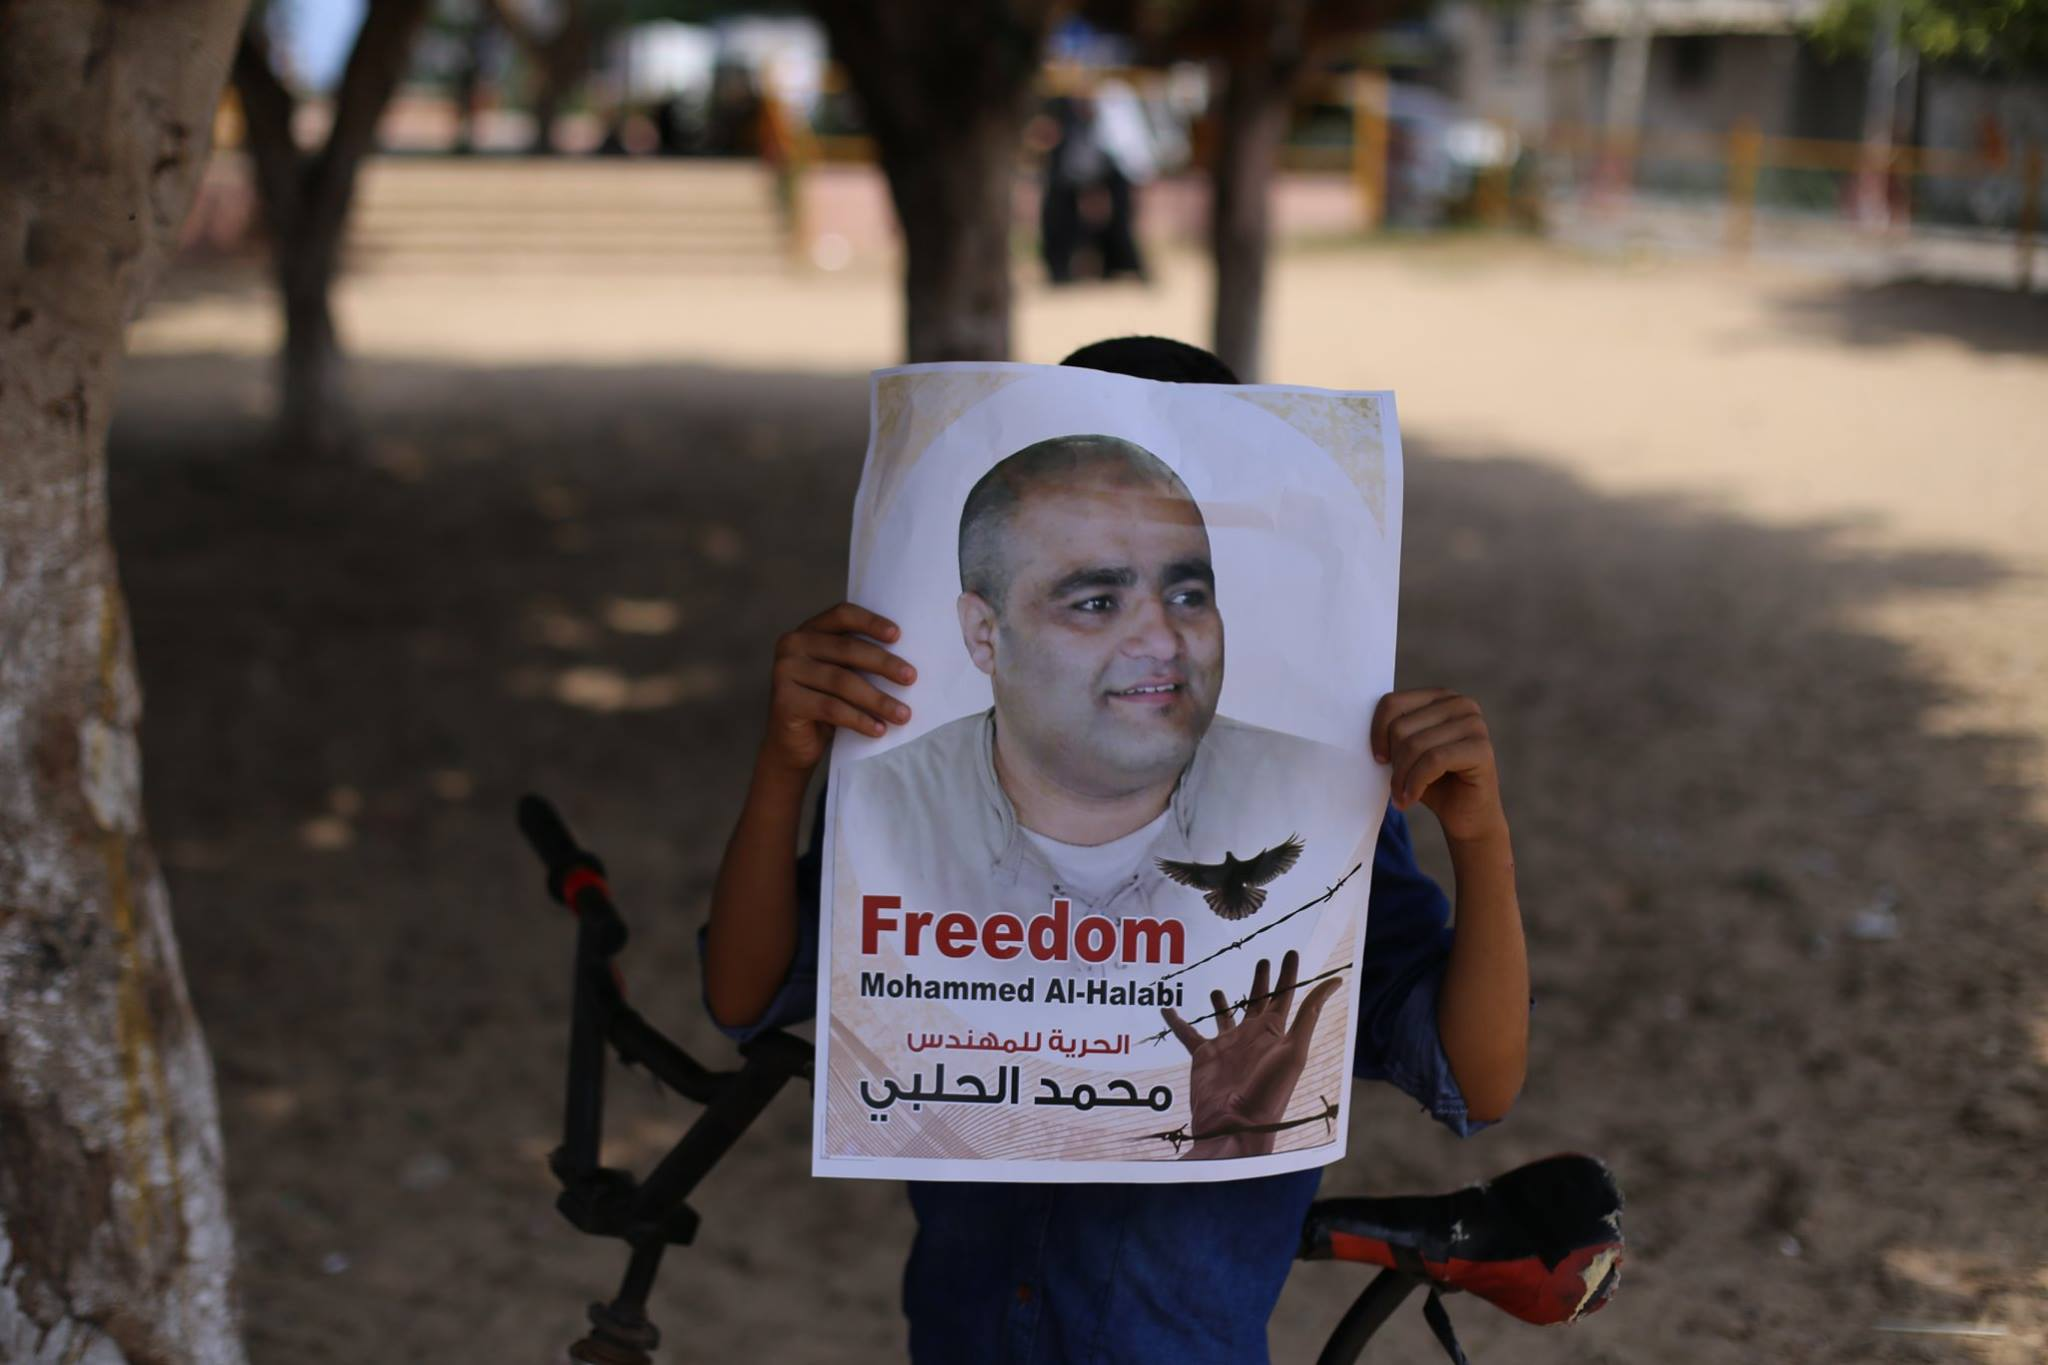 Israel: UN calls to release the aid worker Mohammed El-Halabi or refer him to a fair trial